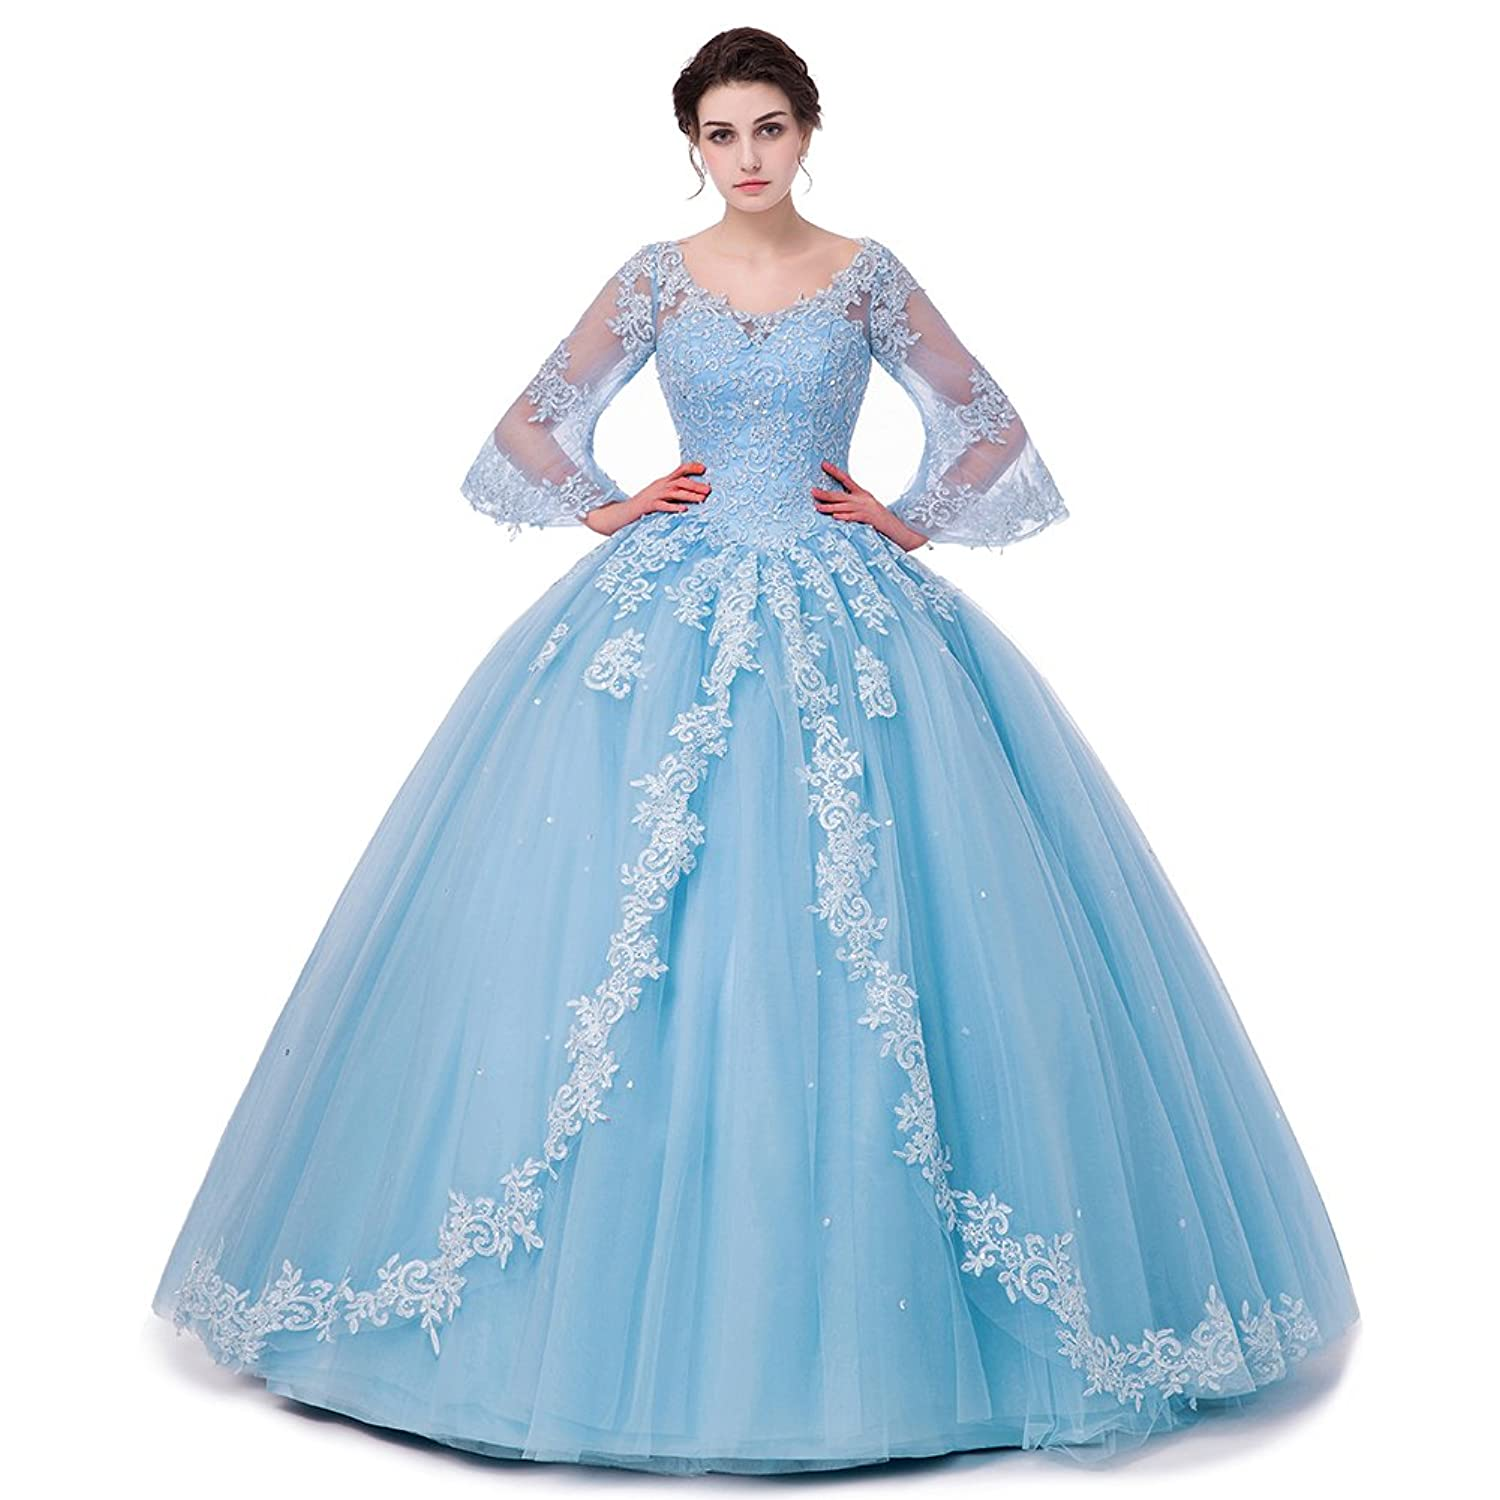 SHDRESS Long Sleeve Lace Quinceanera Dresses Formal Prom Dresses ...